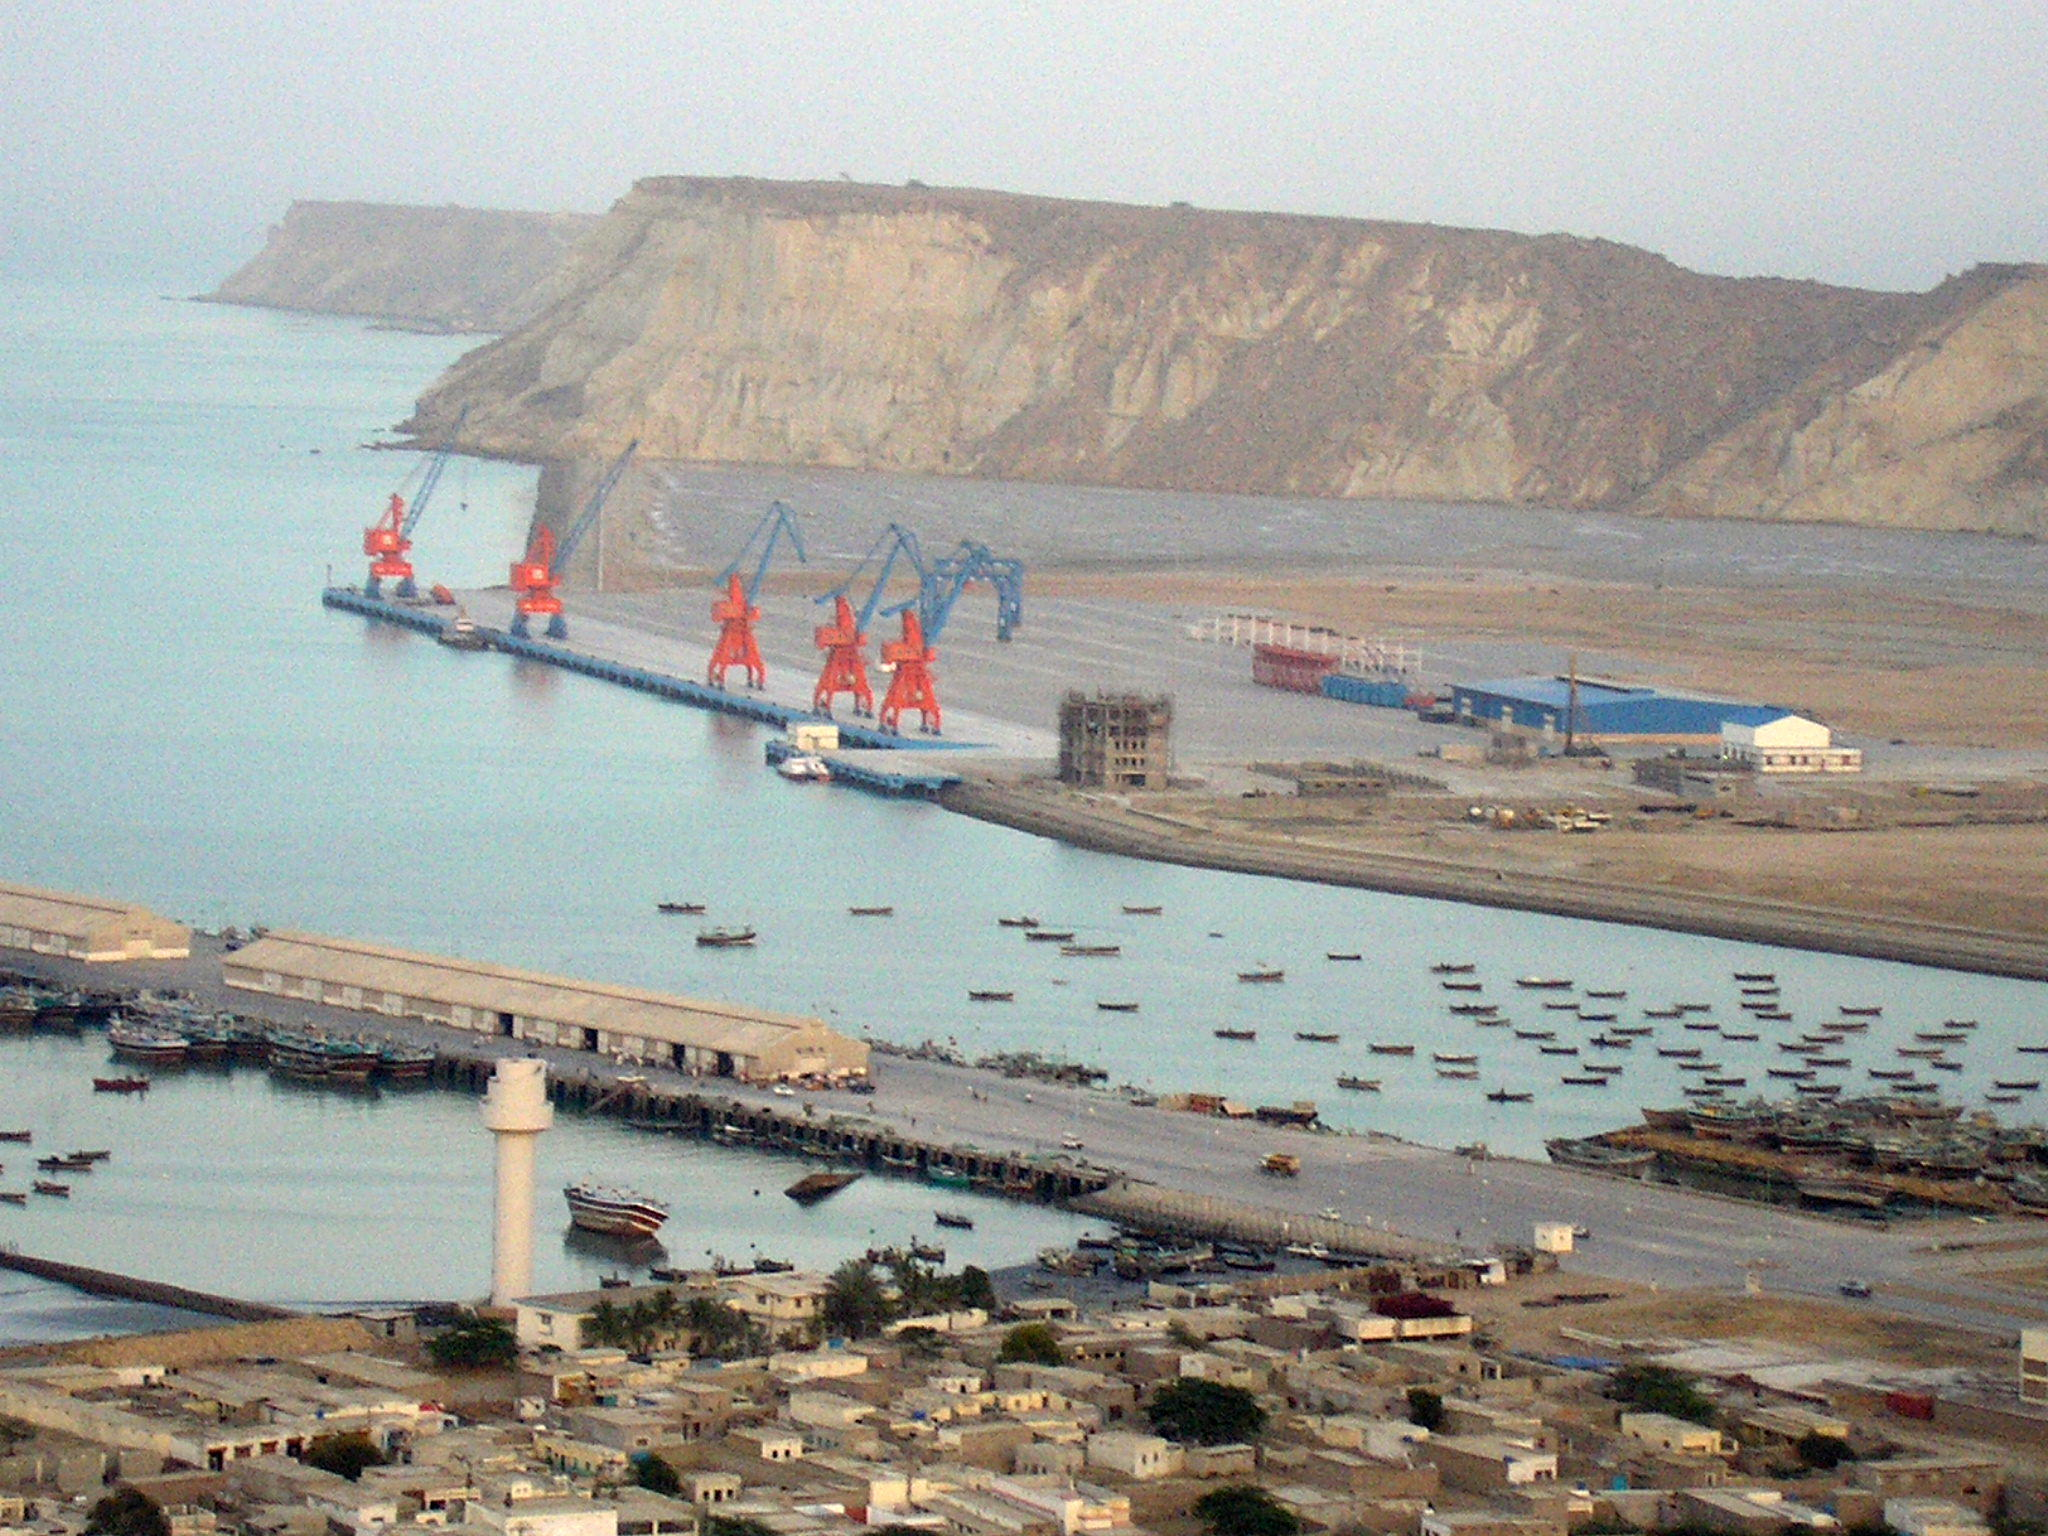 Gwadar Port. Photo by J. Patrick Fischer